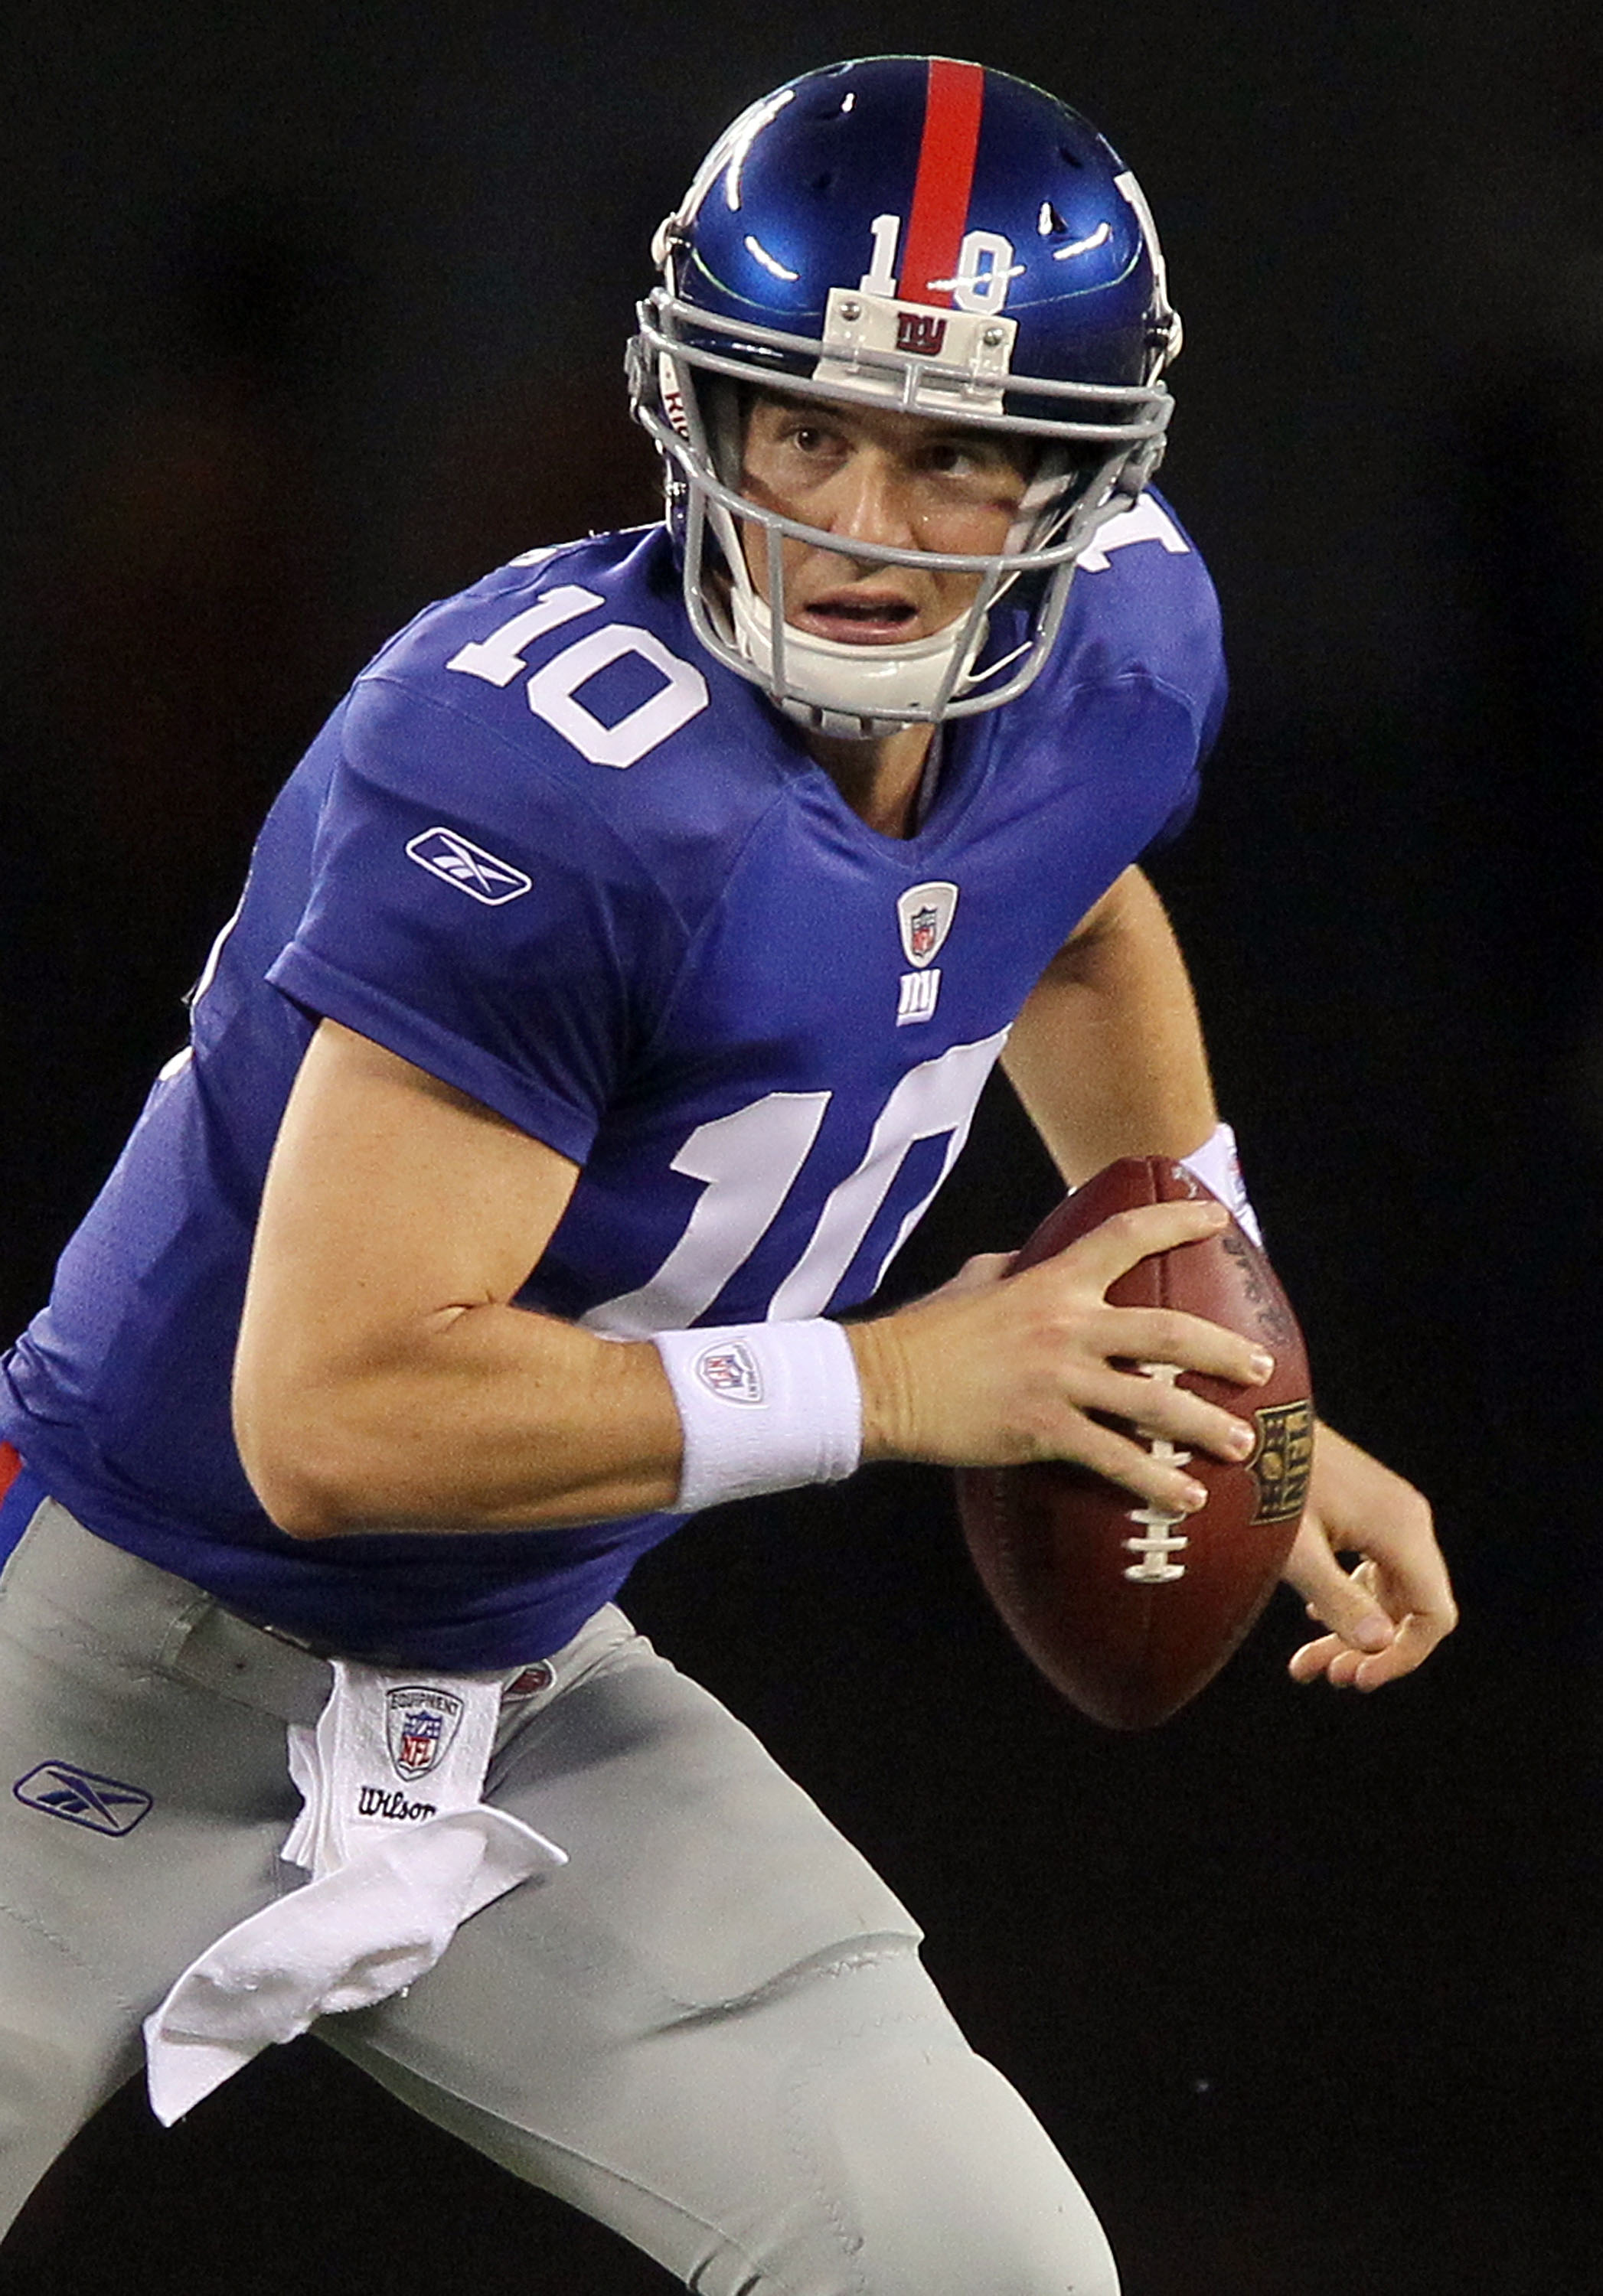 EAST RUTHERFORD, NJ - SEPTEMBER 02:  Eli Manning #10 of the New York Giants looks to pass against the New England Patriots on September 2, 2010 at the New Meadowlands Stadium in East Rutherford, New Jersey.  (Photo by Jim McIsaac/Getty Images)